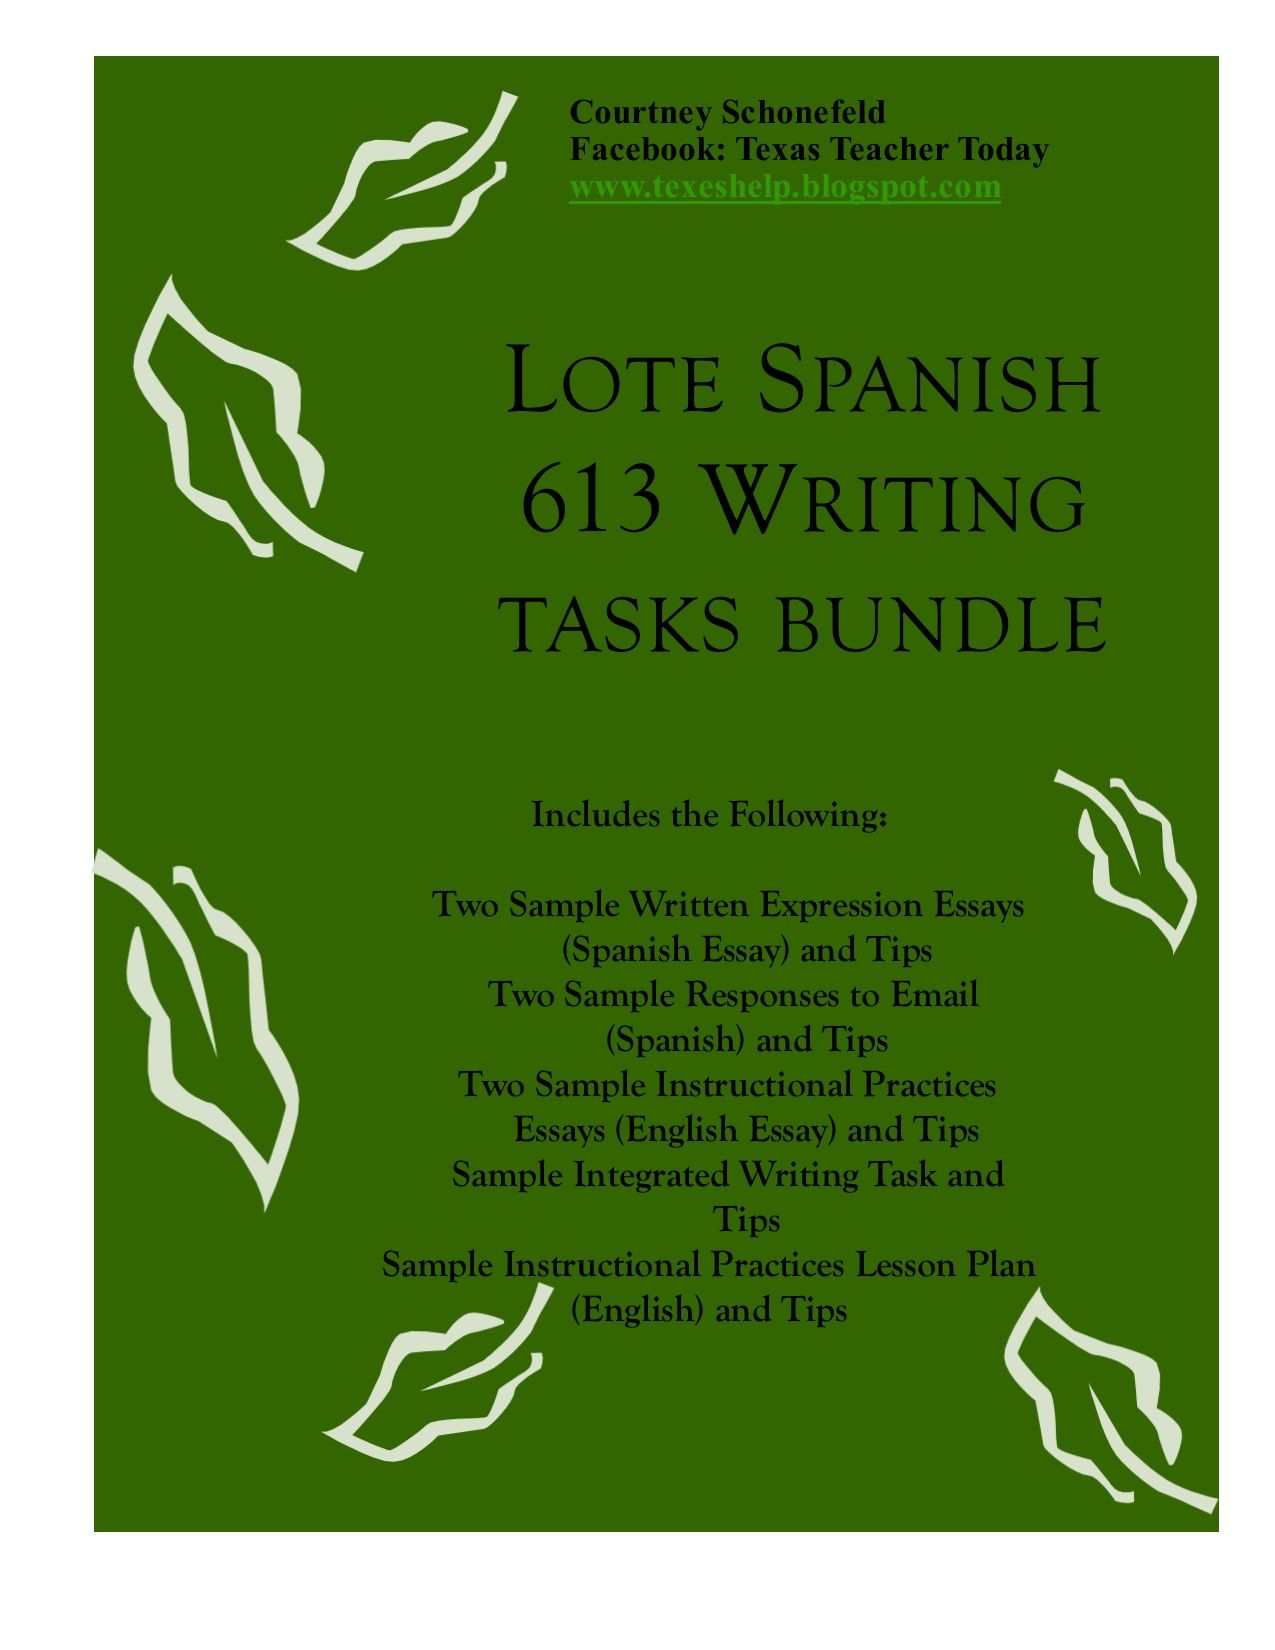 The TExES LOTE Spanish 613 requires you to complete 5 writing tasks in  Spanish and English. This guide gives you tips to write effective  responses, ...